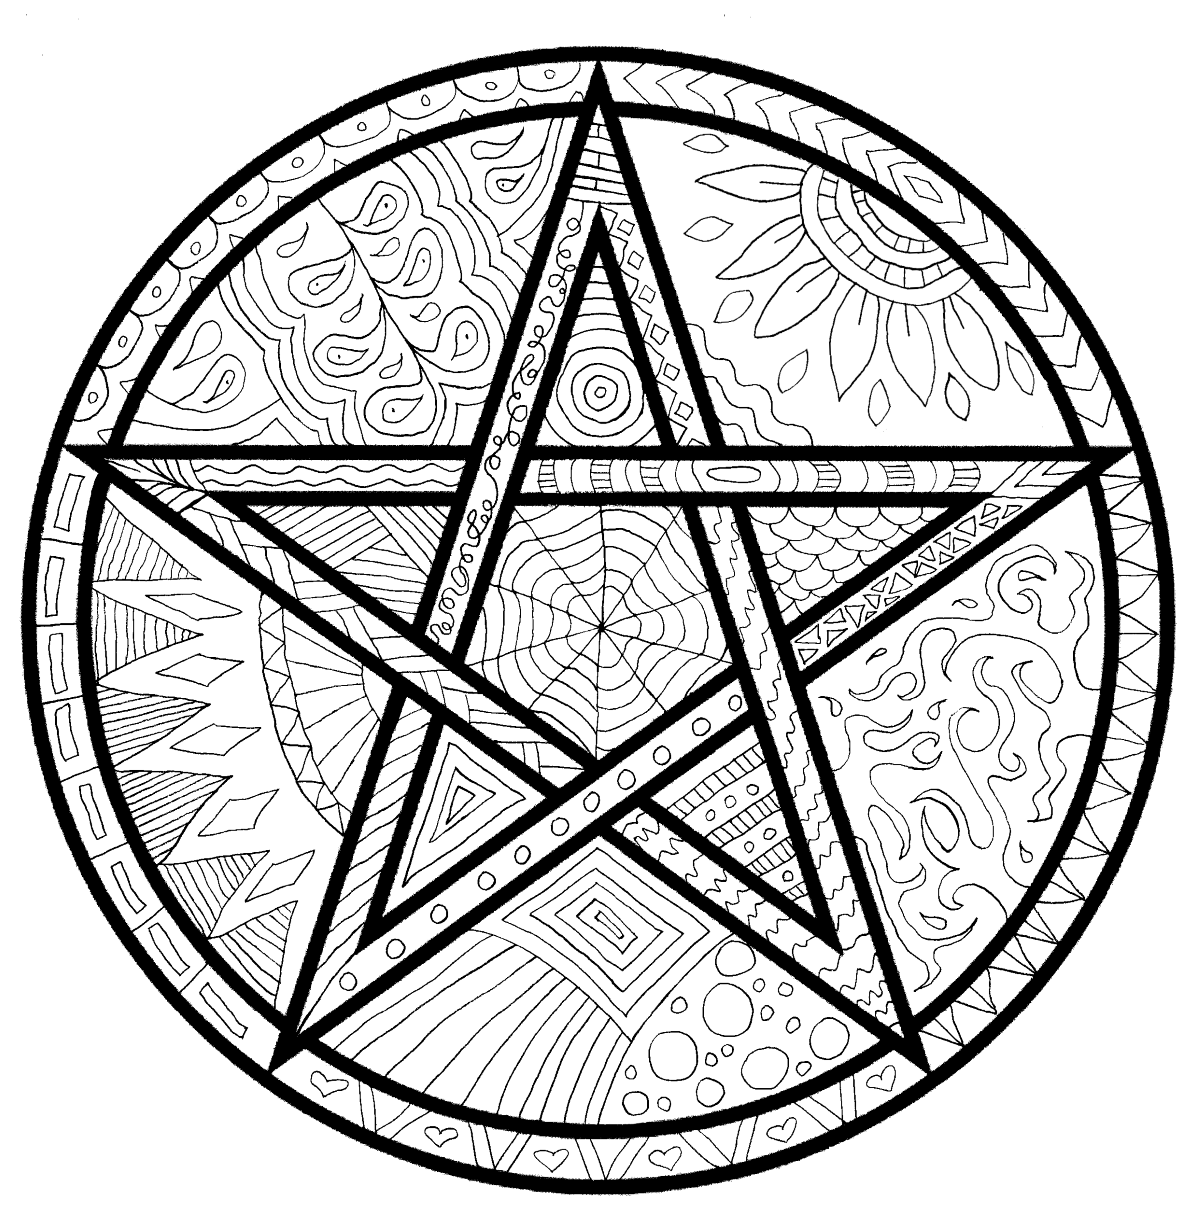 Detailed Pagan coloring pages, for adults or kids ...Detailed Mandala Coloring Pages For Adults